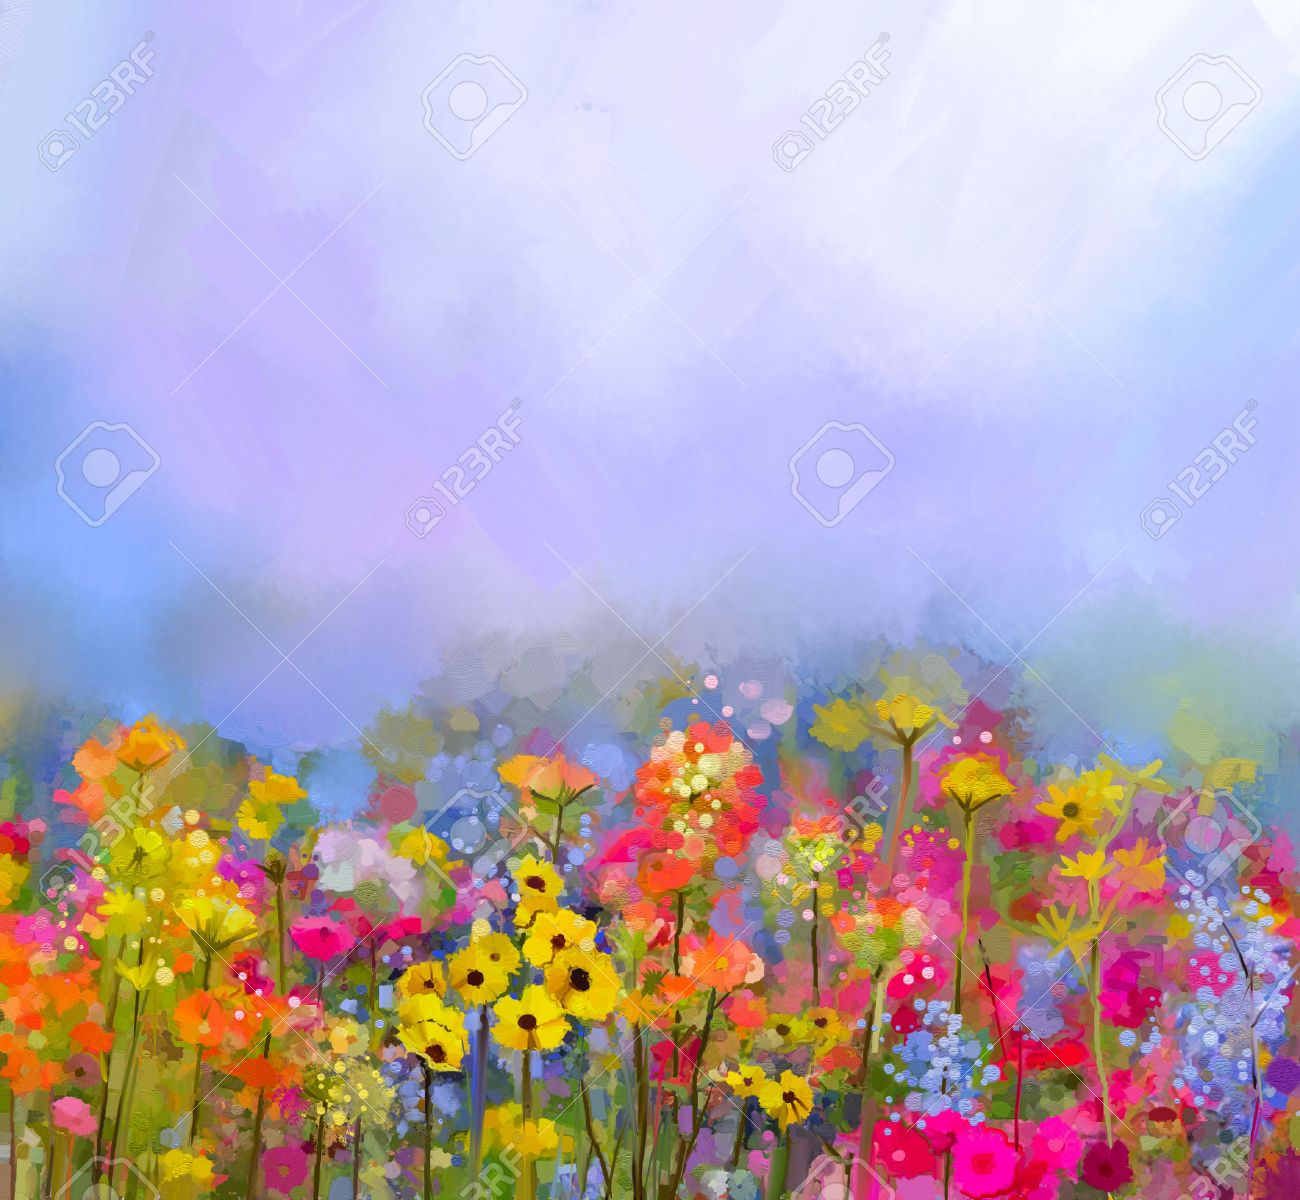 Colorful Daisies In A Field